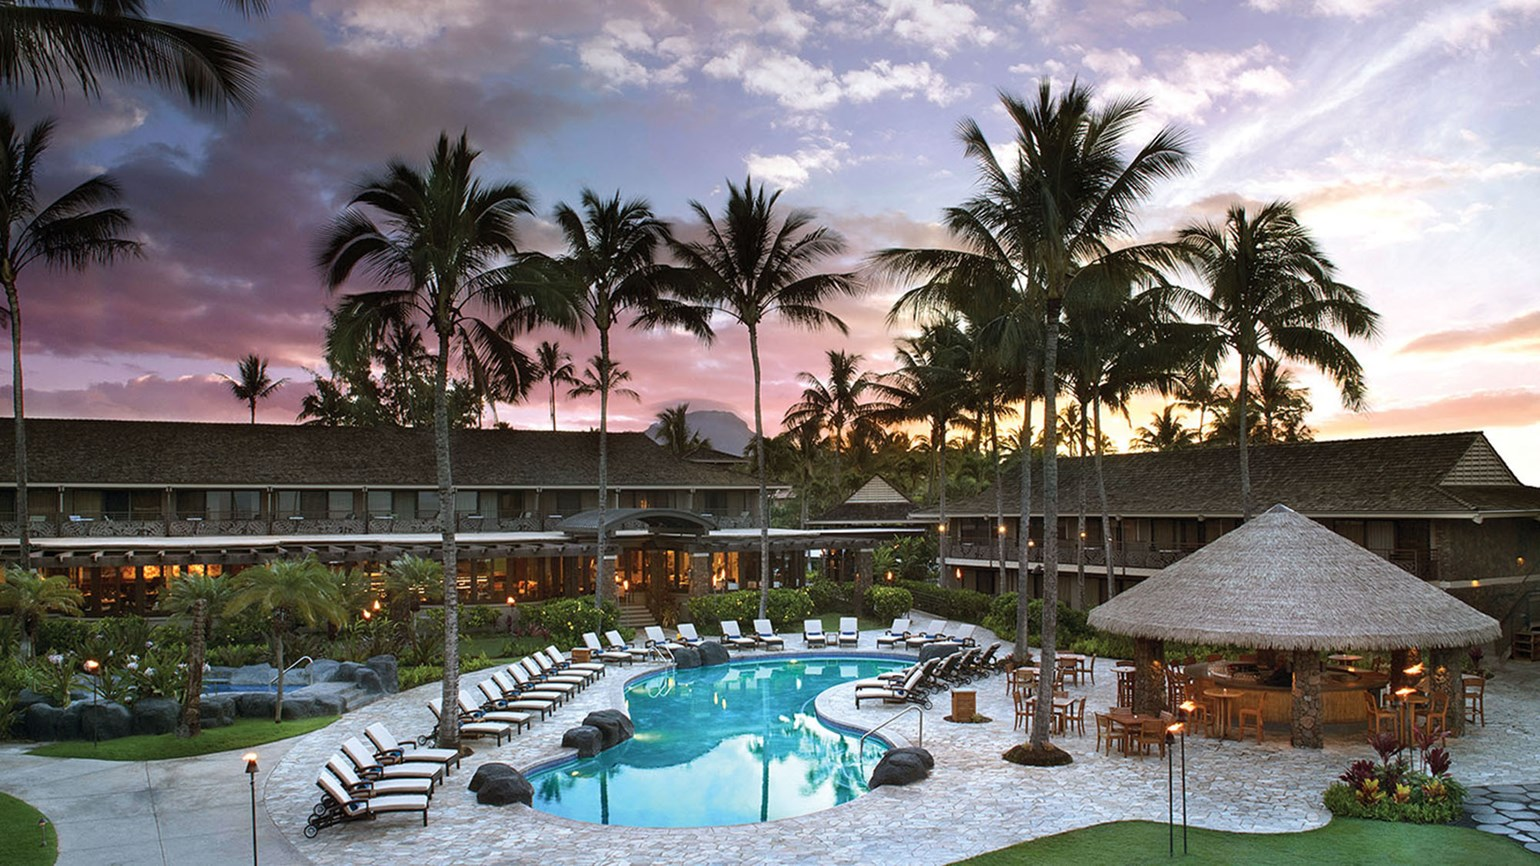 Koa Kea Hotel and Resort reopening on Kauai